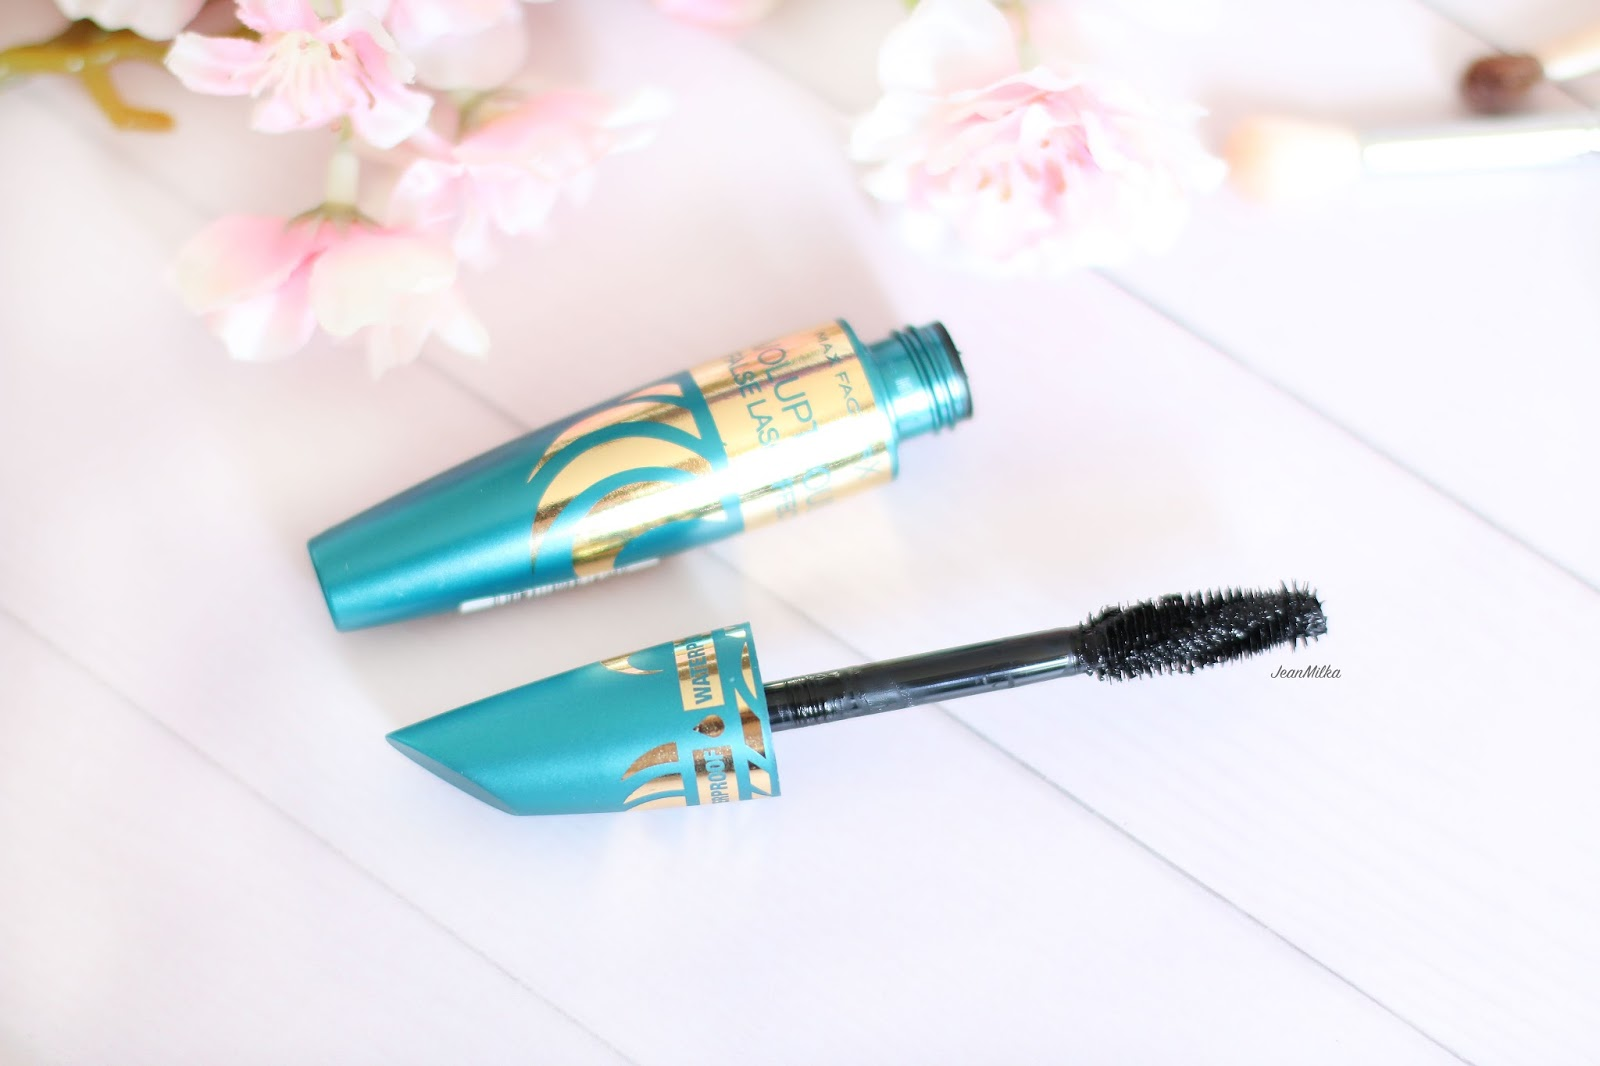 review, max factor, max factor mascara, mascara, drugstore, makeup, beauty